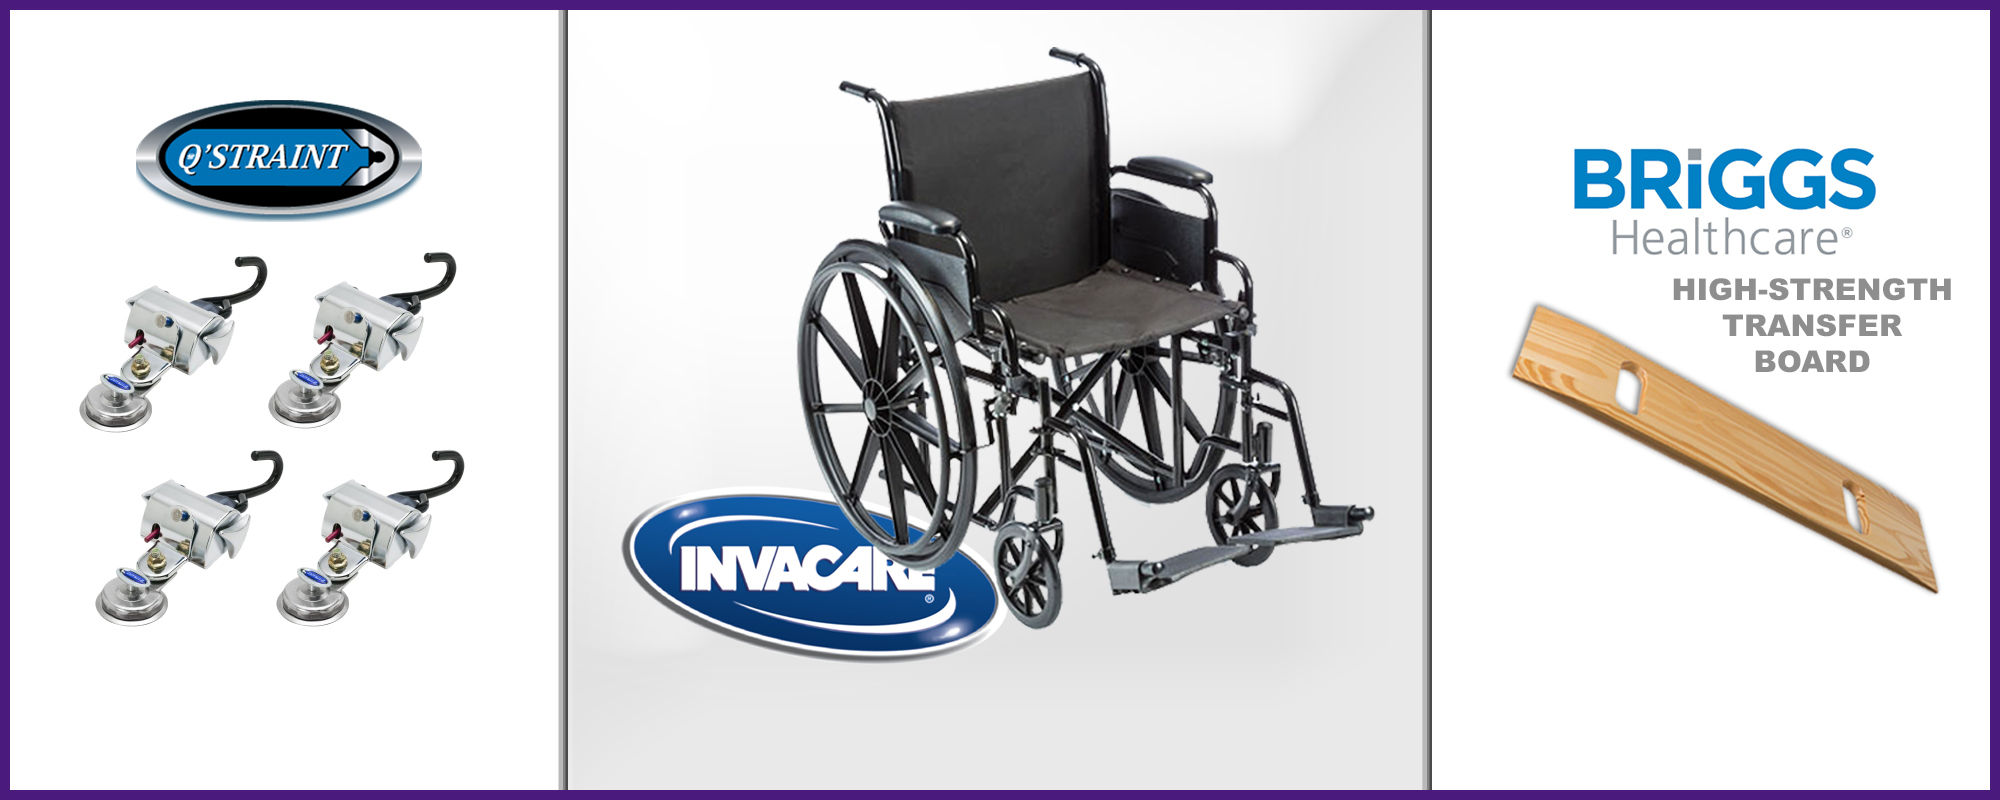 Williams Mobility uses only high-quality medical transportation equipment, including an Invacare wheelchair.